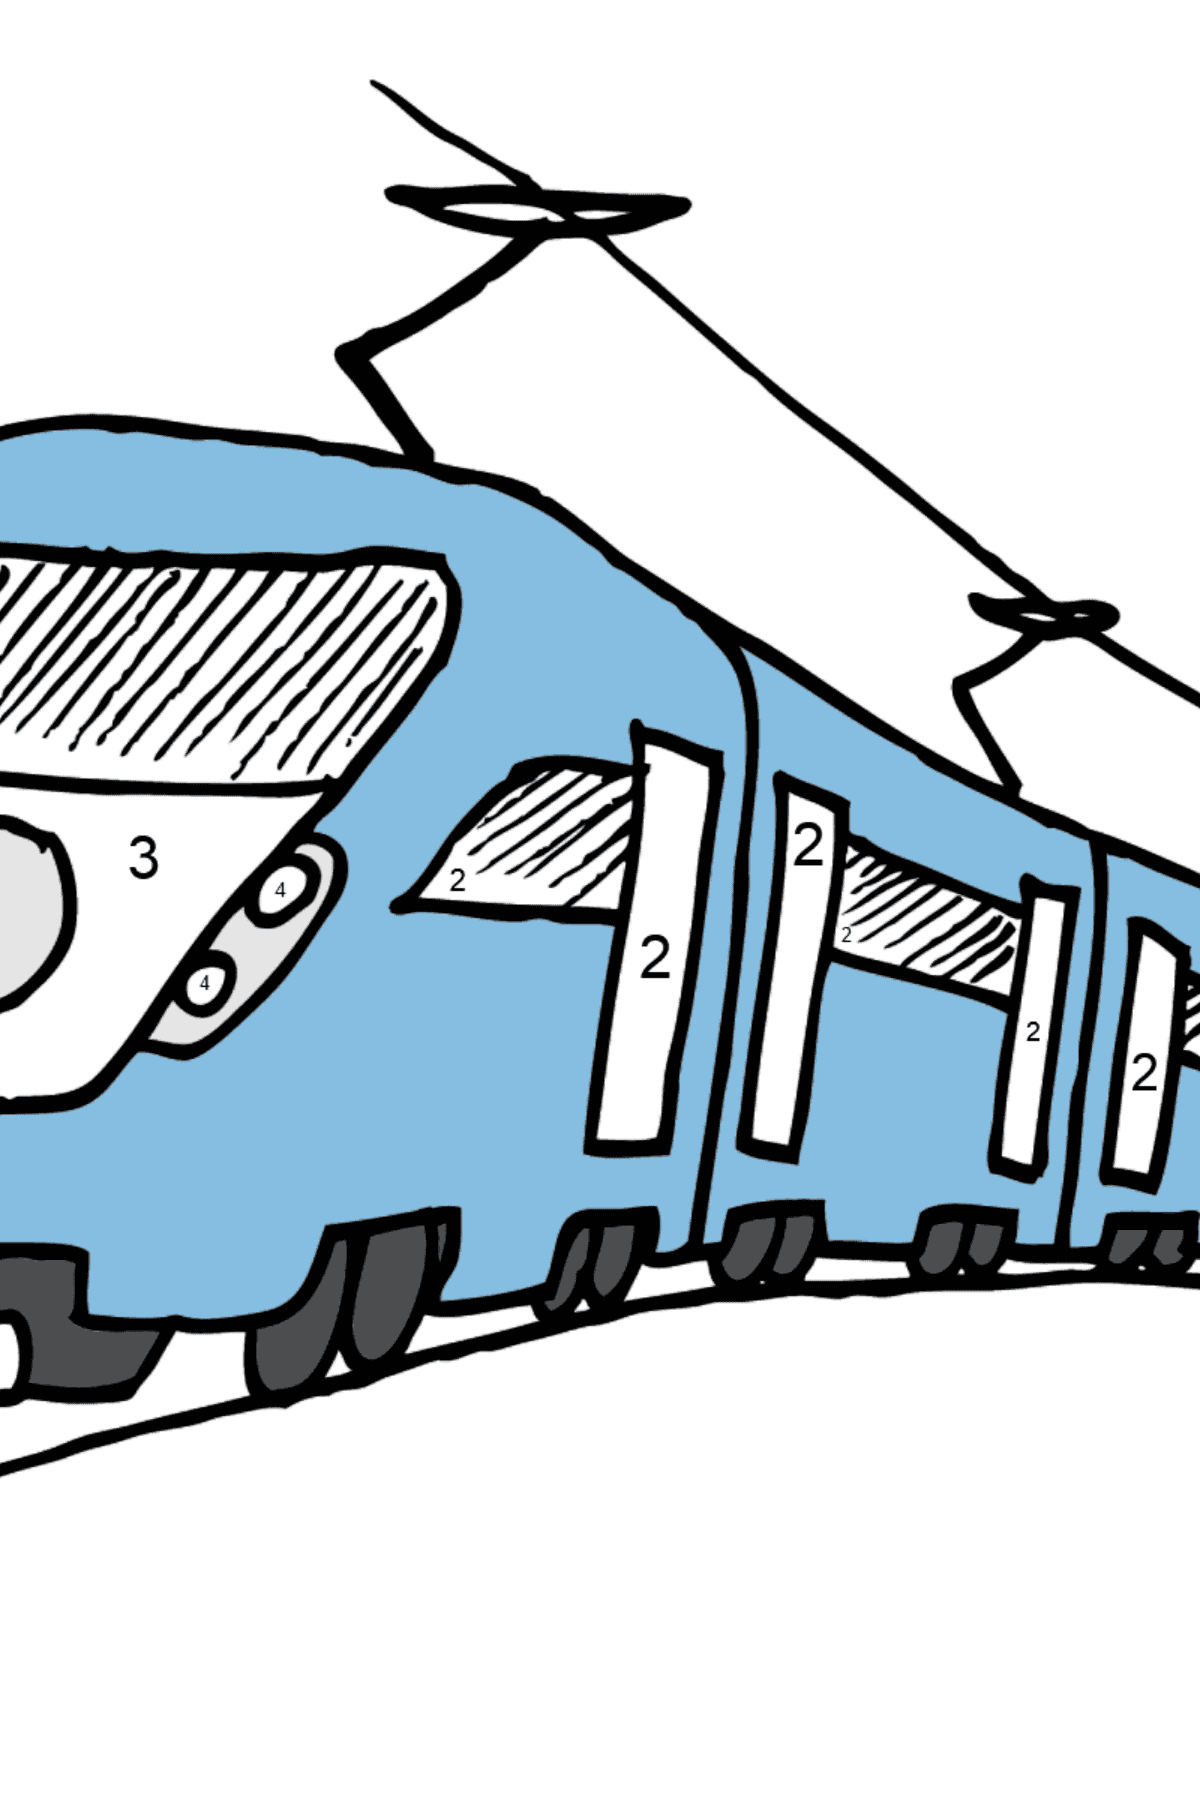 Coloring Page - A Passenger Train - Coloring by Numbers for Kids